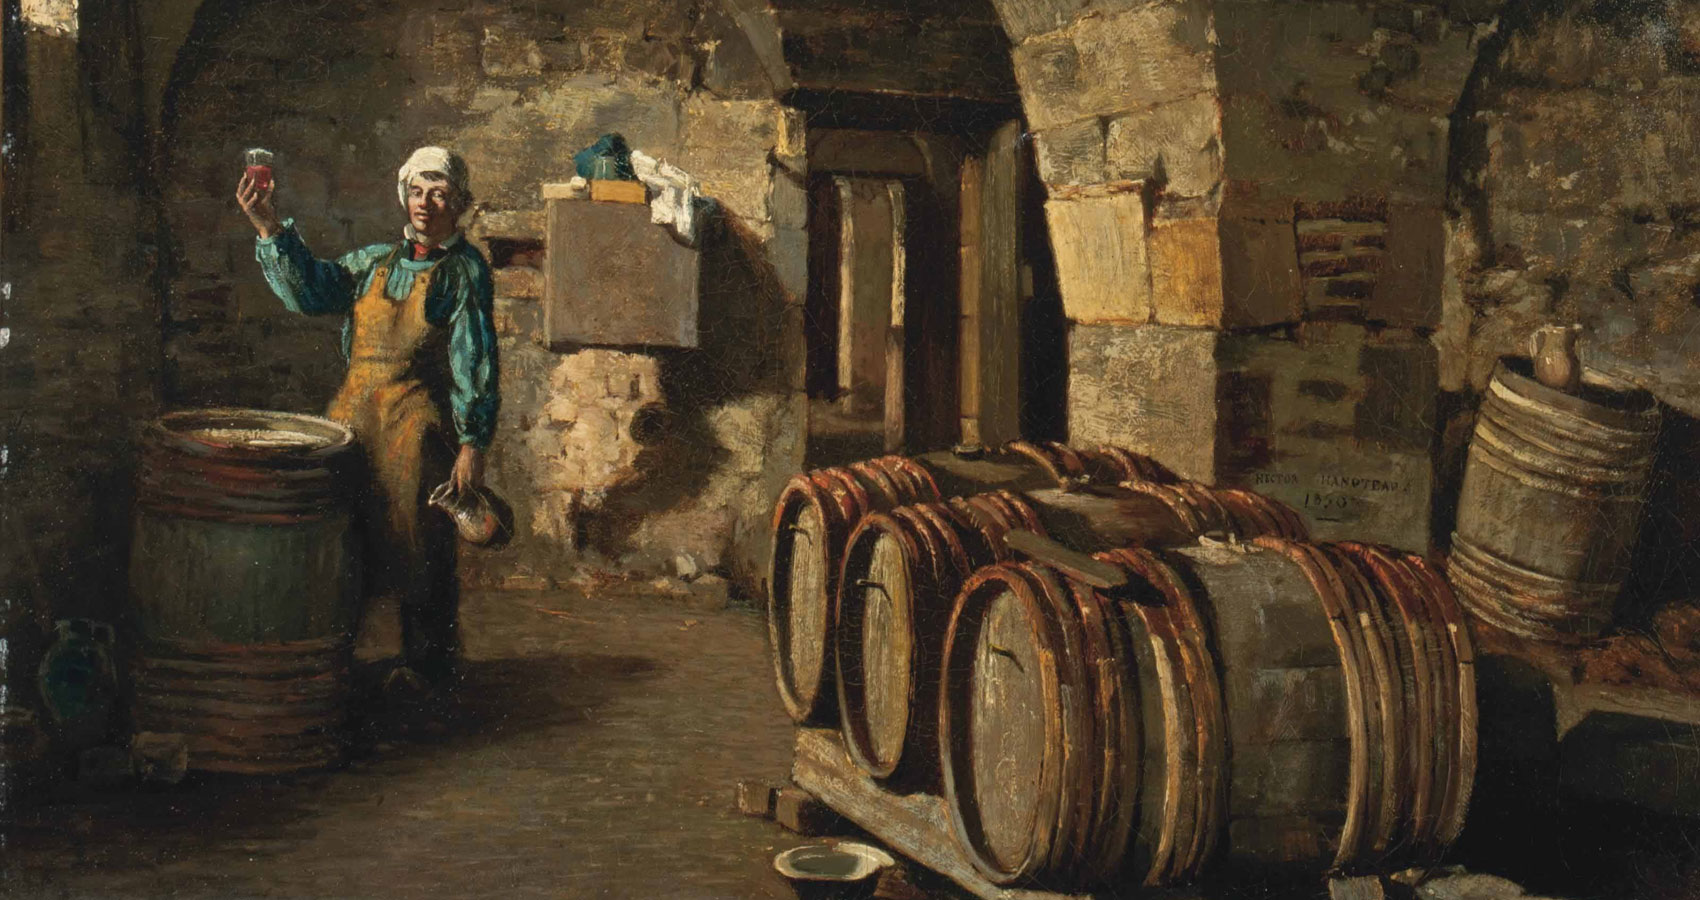 The Vintner and the Wine by Charlie Bottle at Spillwords.com